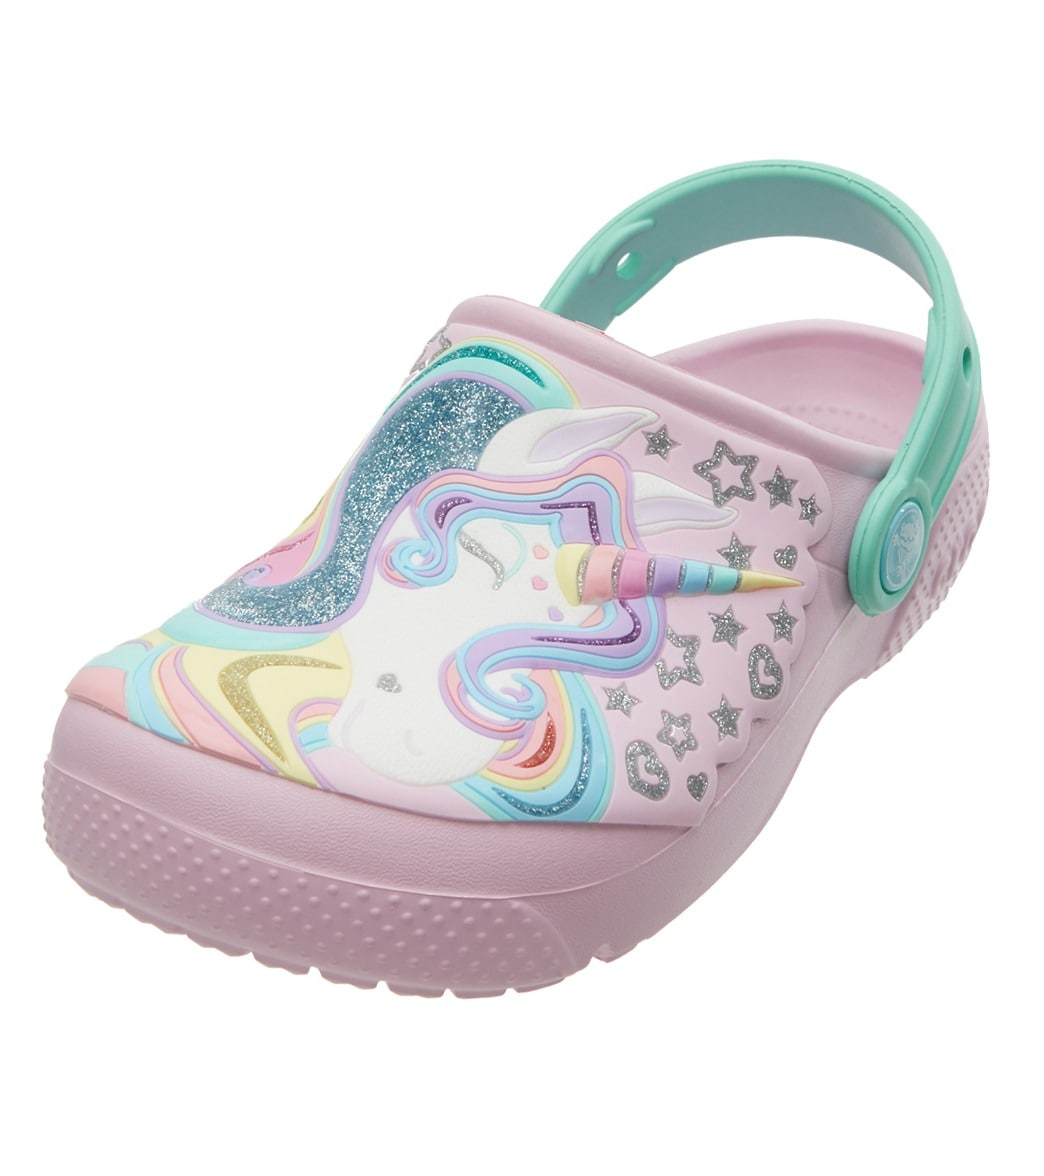 792b51013 Crocs Girls  Crocs Fun Lab Clog (Toddler